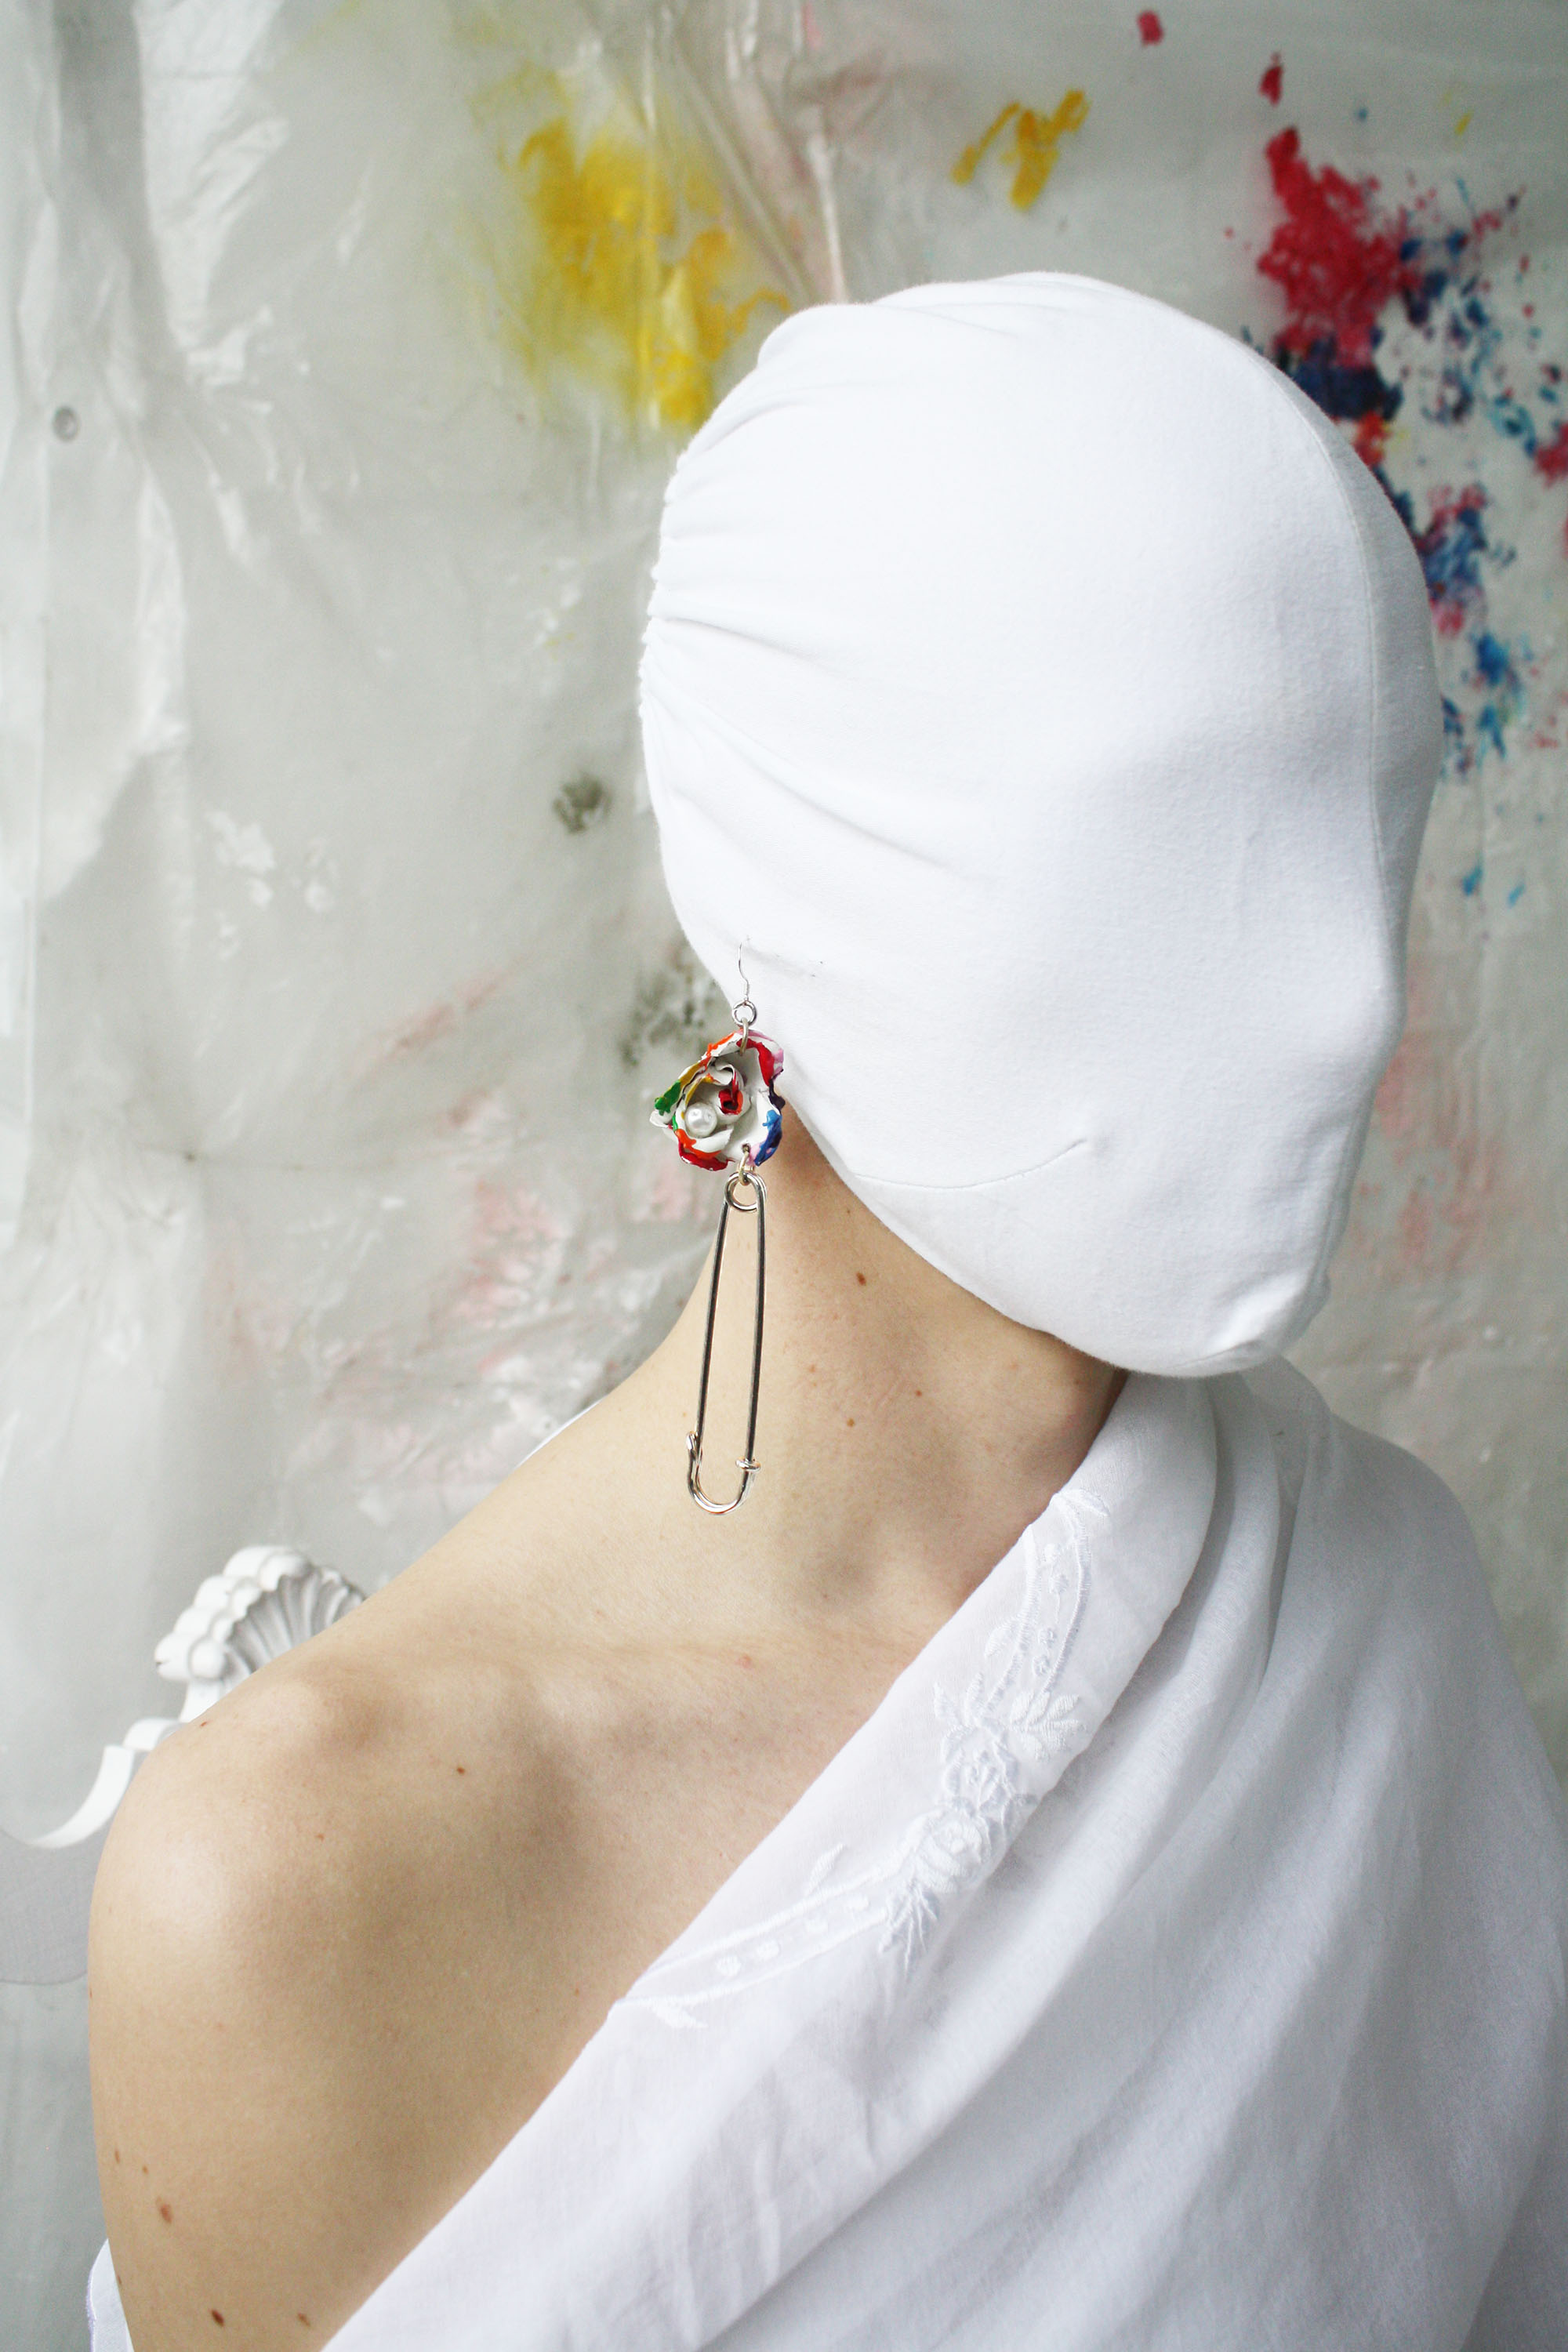 Masked model wearing assemblage earring made of a kilt pin, painted rose and pearl.